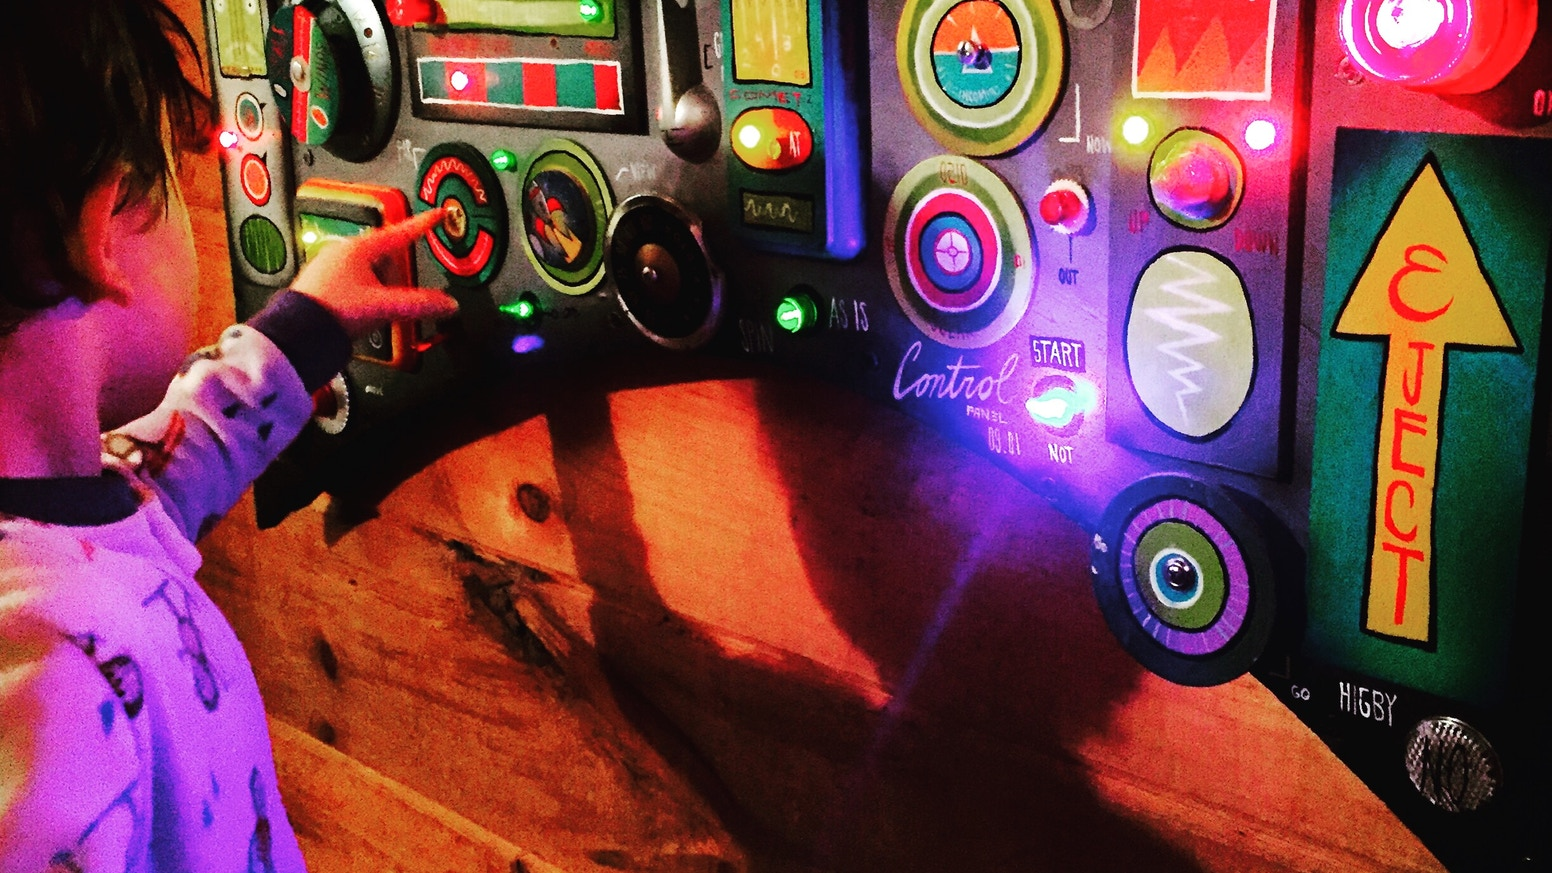 Kids Outer Space Rocket Control Panels By John Higby By